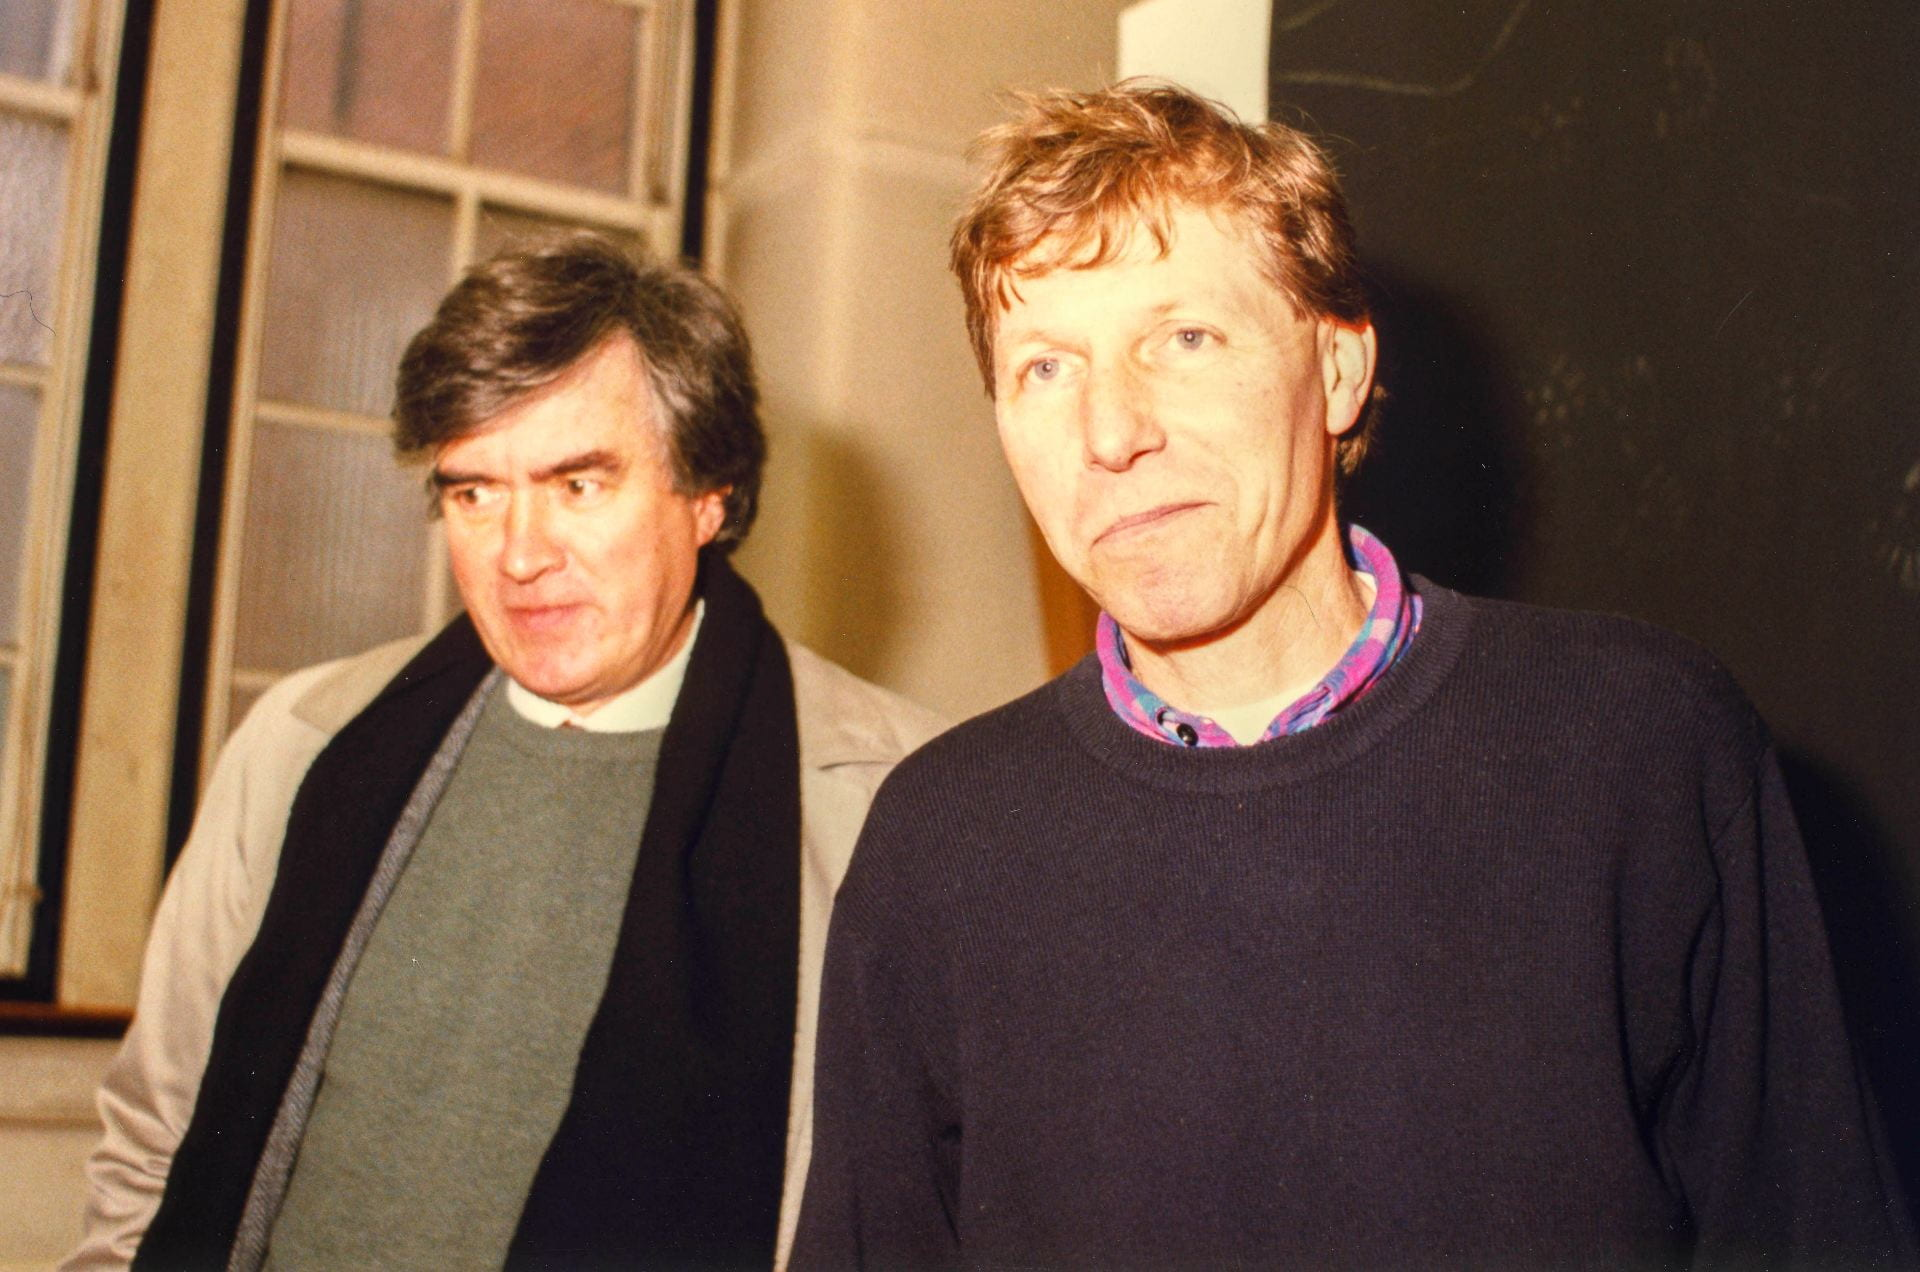 Portrait of Ian Jeffrey and Nigel Perkins together in Goldsmiths College main building studio in 1996. Ian is wearing a black scarf around his shoulders. Nigel is wearing a sweater.